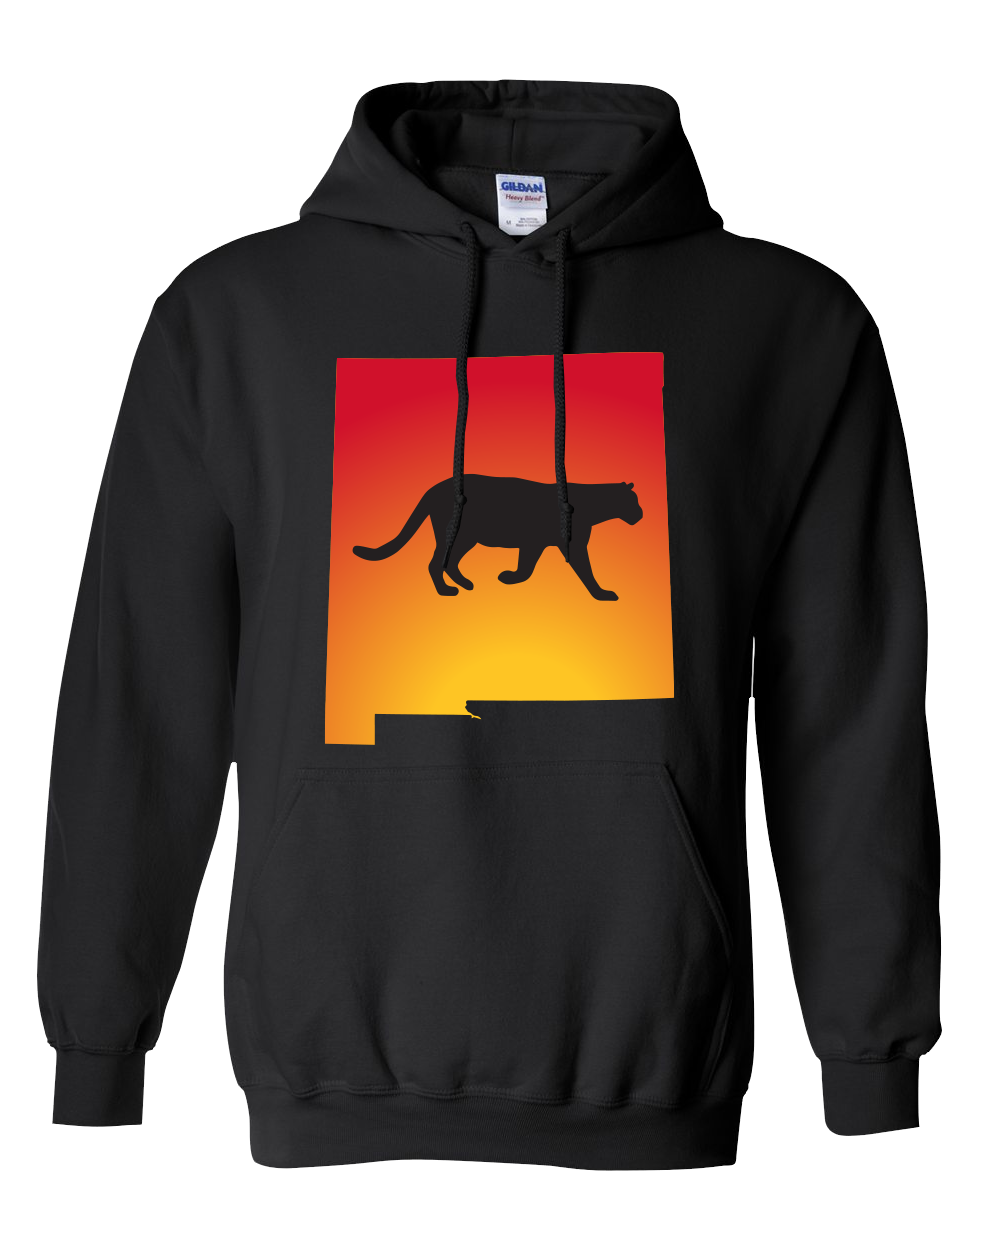 Pullover Hooded Sweatshirt New Mexico Black Mountain Lion Vibrant Design High Quality Tight Knit Ring Spun Low Maintenance Cotton Printed With The Newest Available Color Transfer Technology